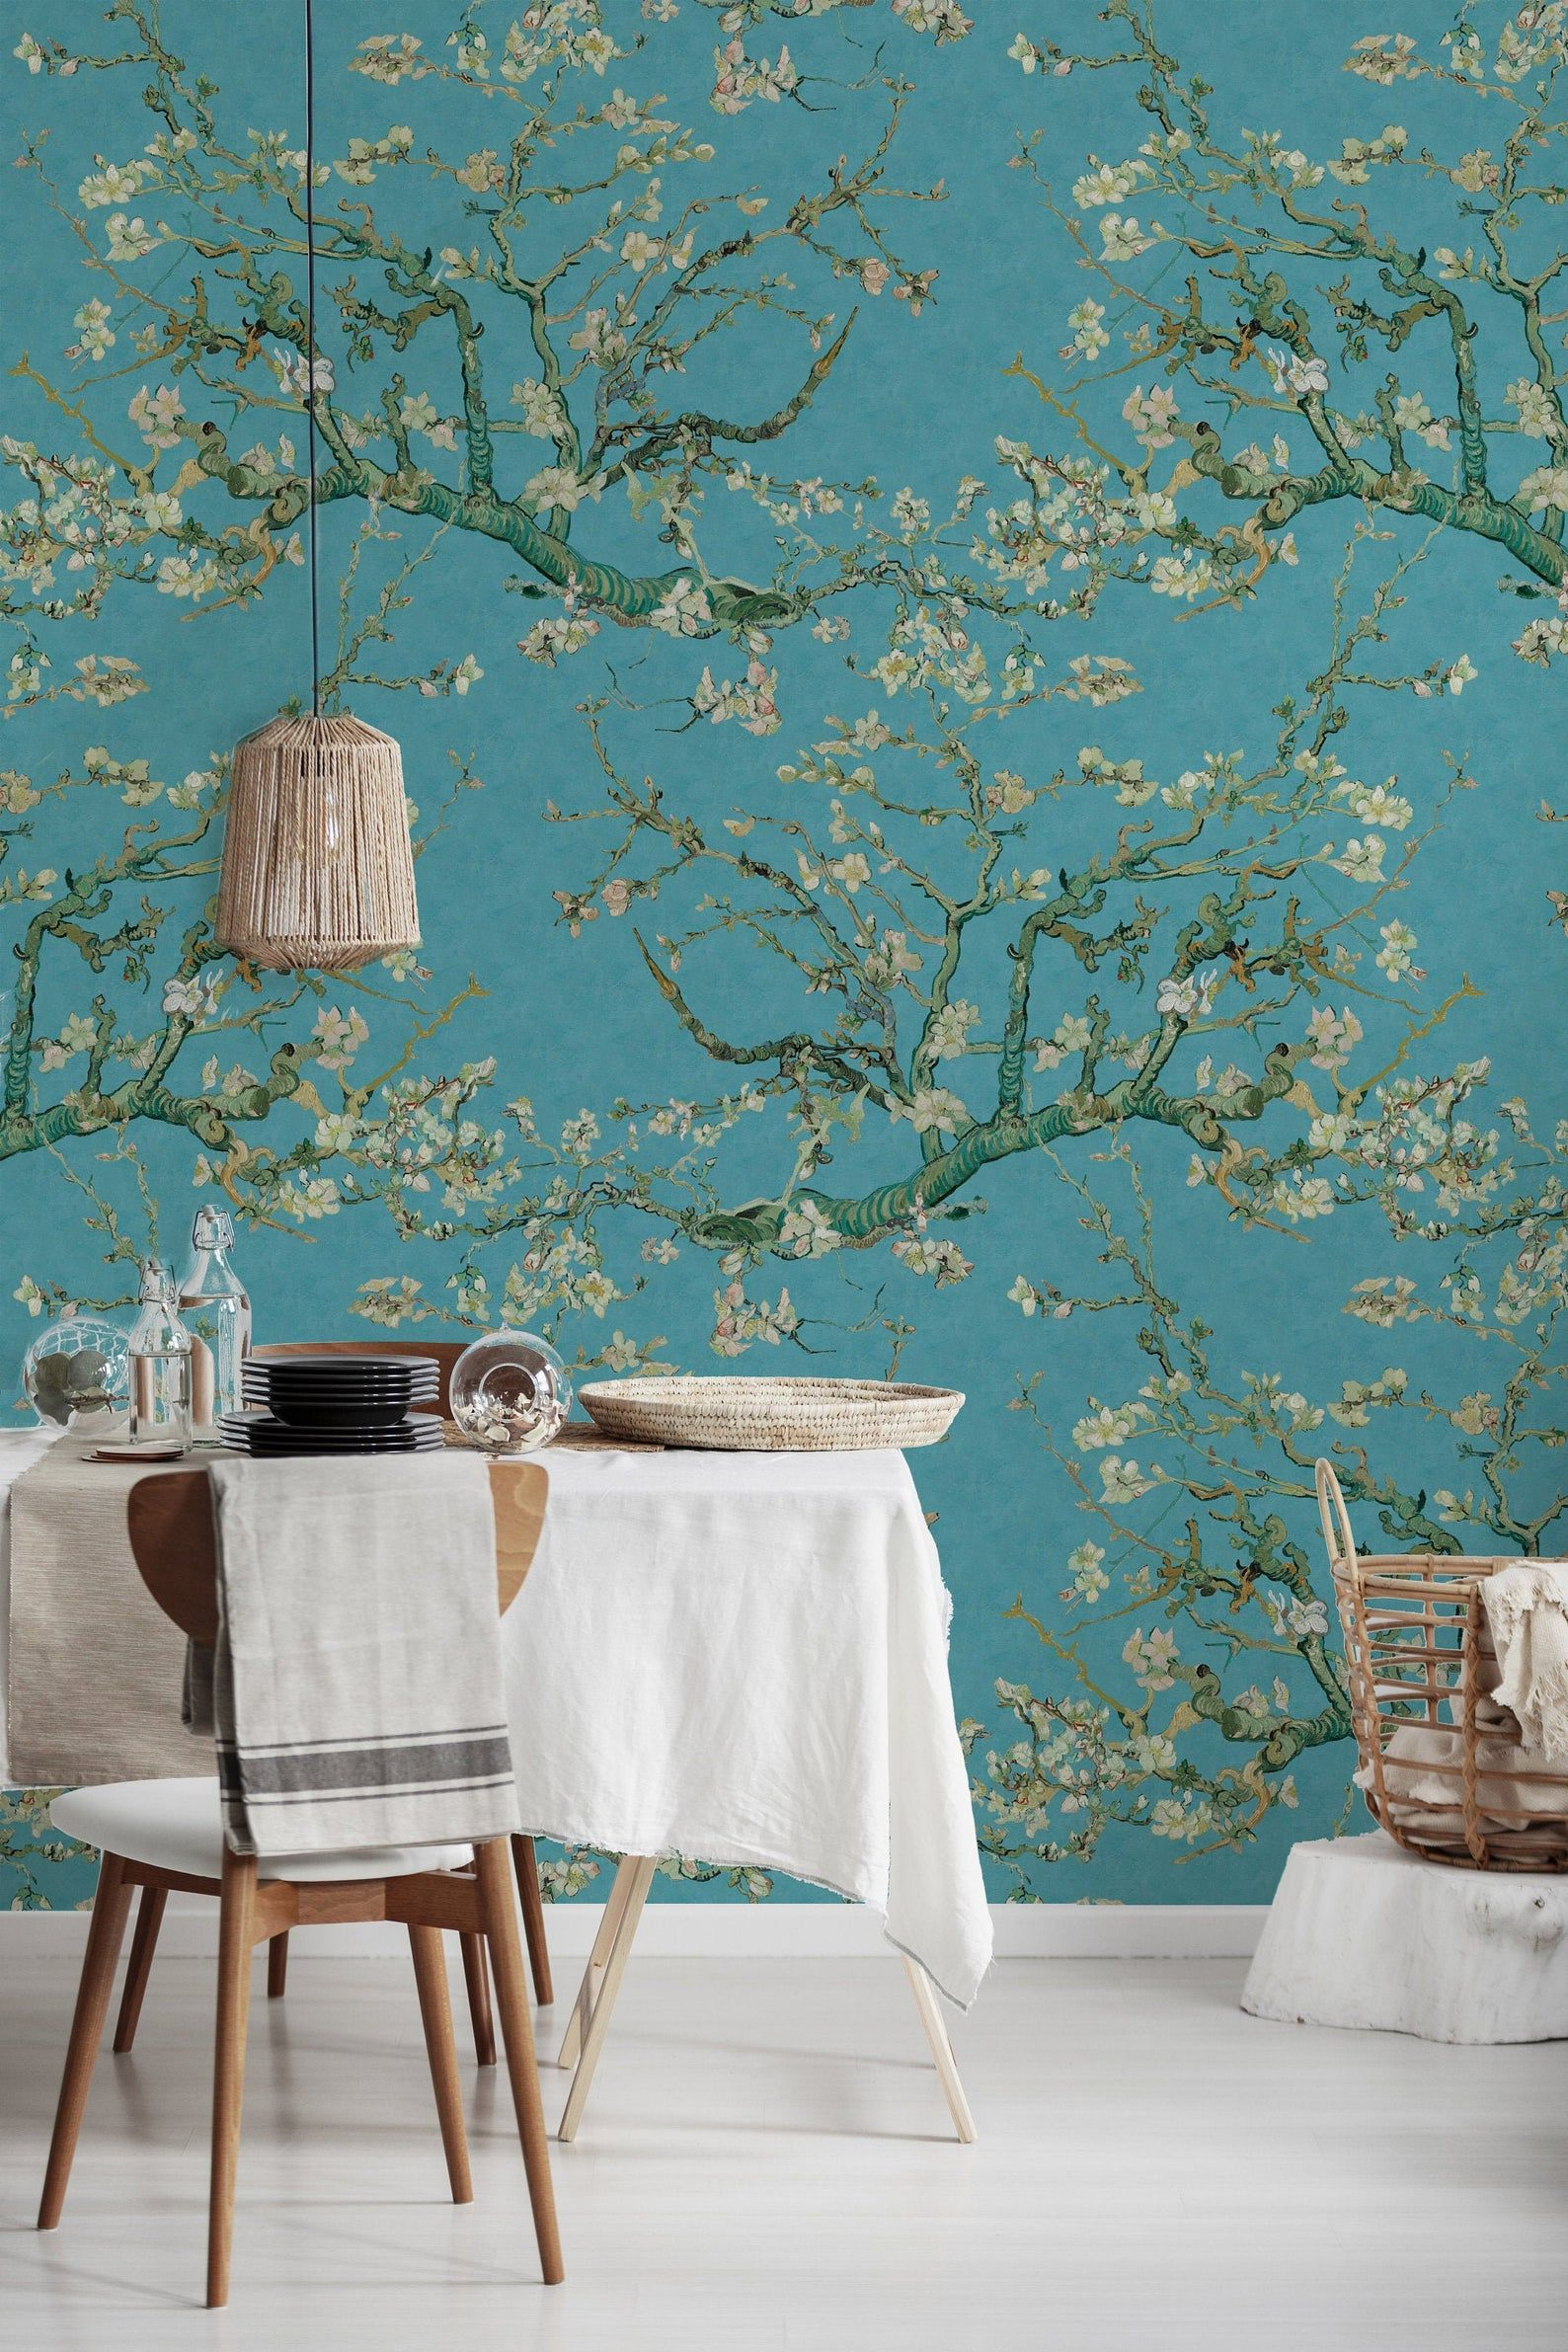 Almond Blossoms Peel N Stick Or Prepasted Wallpaper Etsy In 2020 Prepasted Wallpaper Almond Blossom Wallpaper